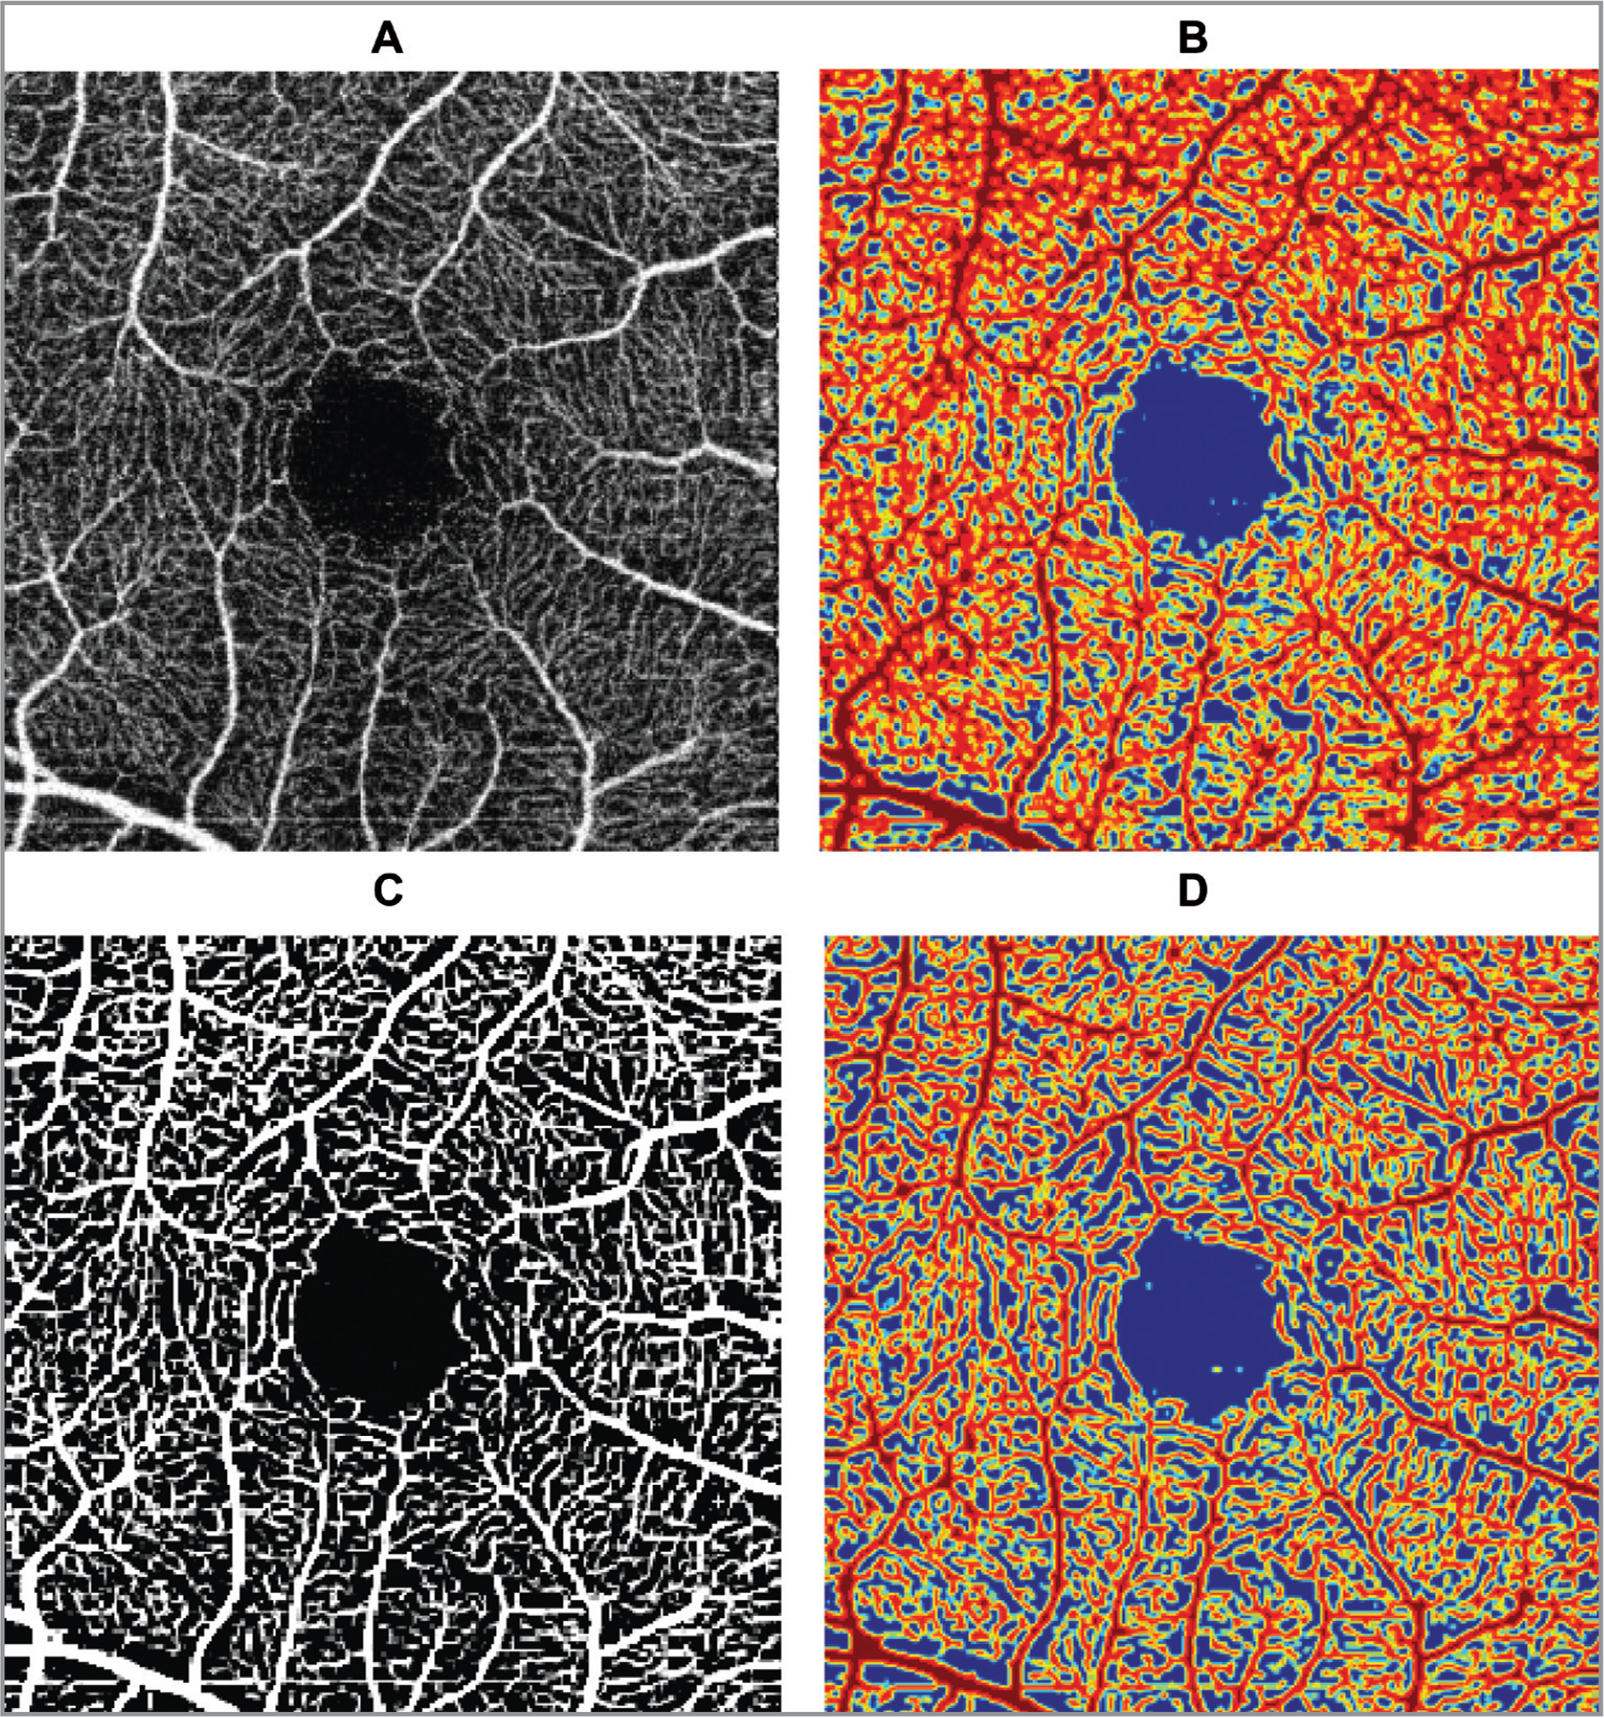 Swept-source optical coherence tomography image of the superficial plexus before (A) and after (B) the application of Frangi filter, respectively. Corresponding contour maps (C, D).